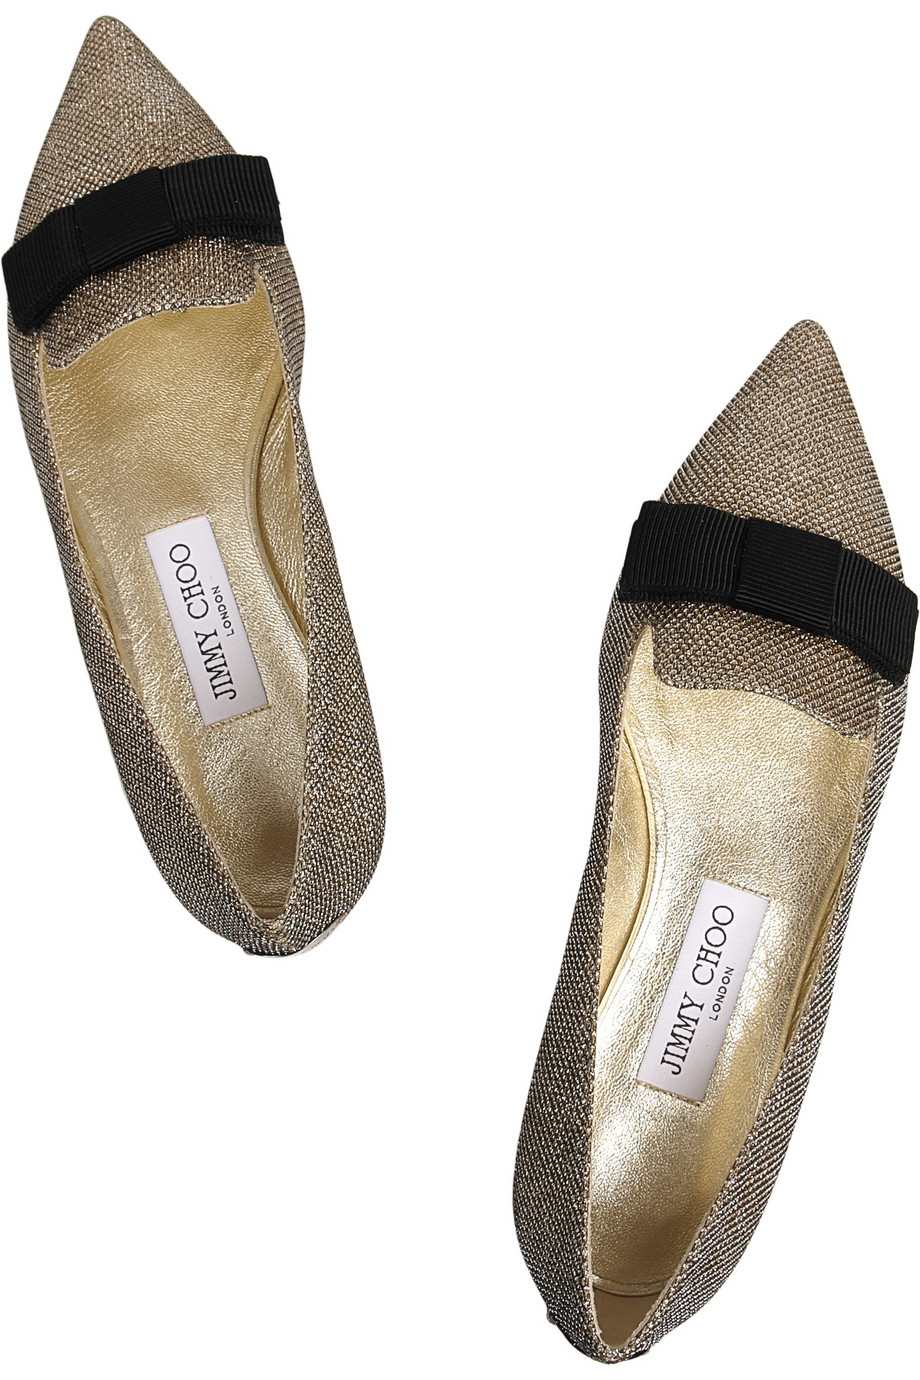 0c825aee39 ... store jimmy choo gold gala gold lame point toe flats 21c43 6d22b